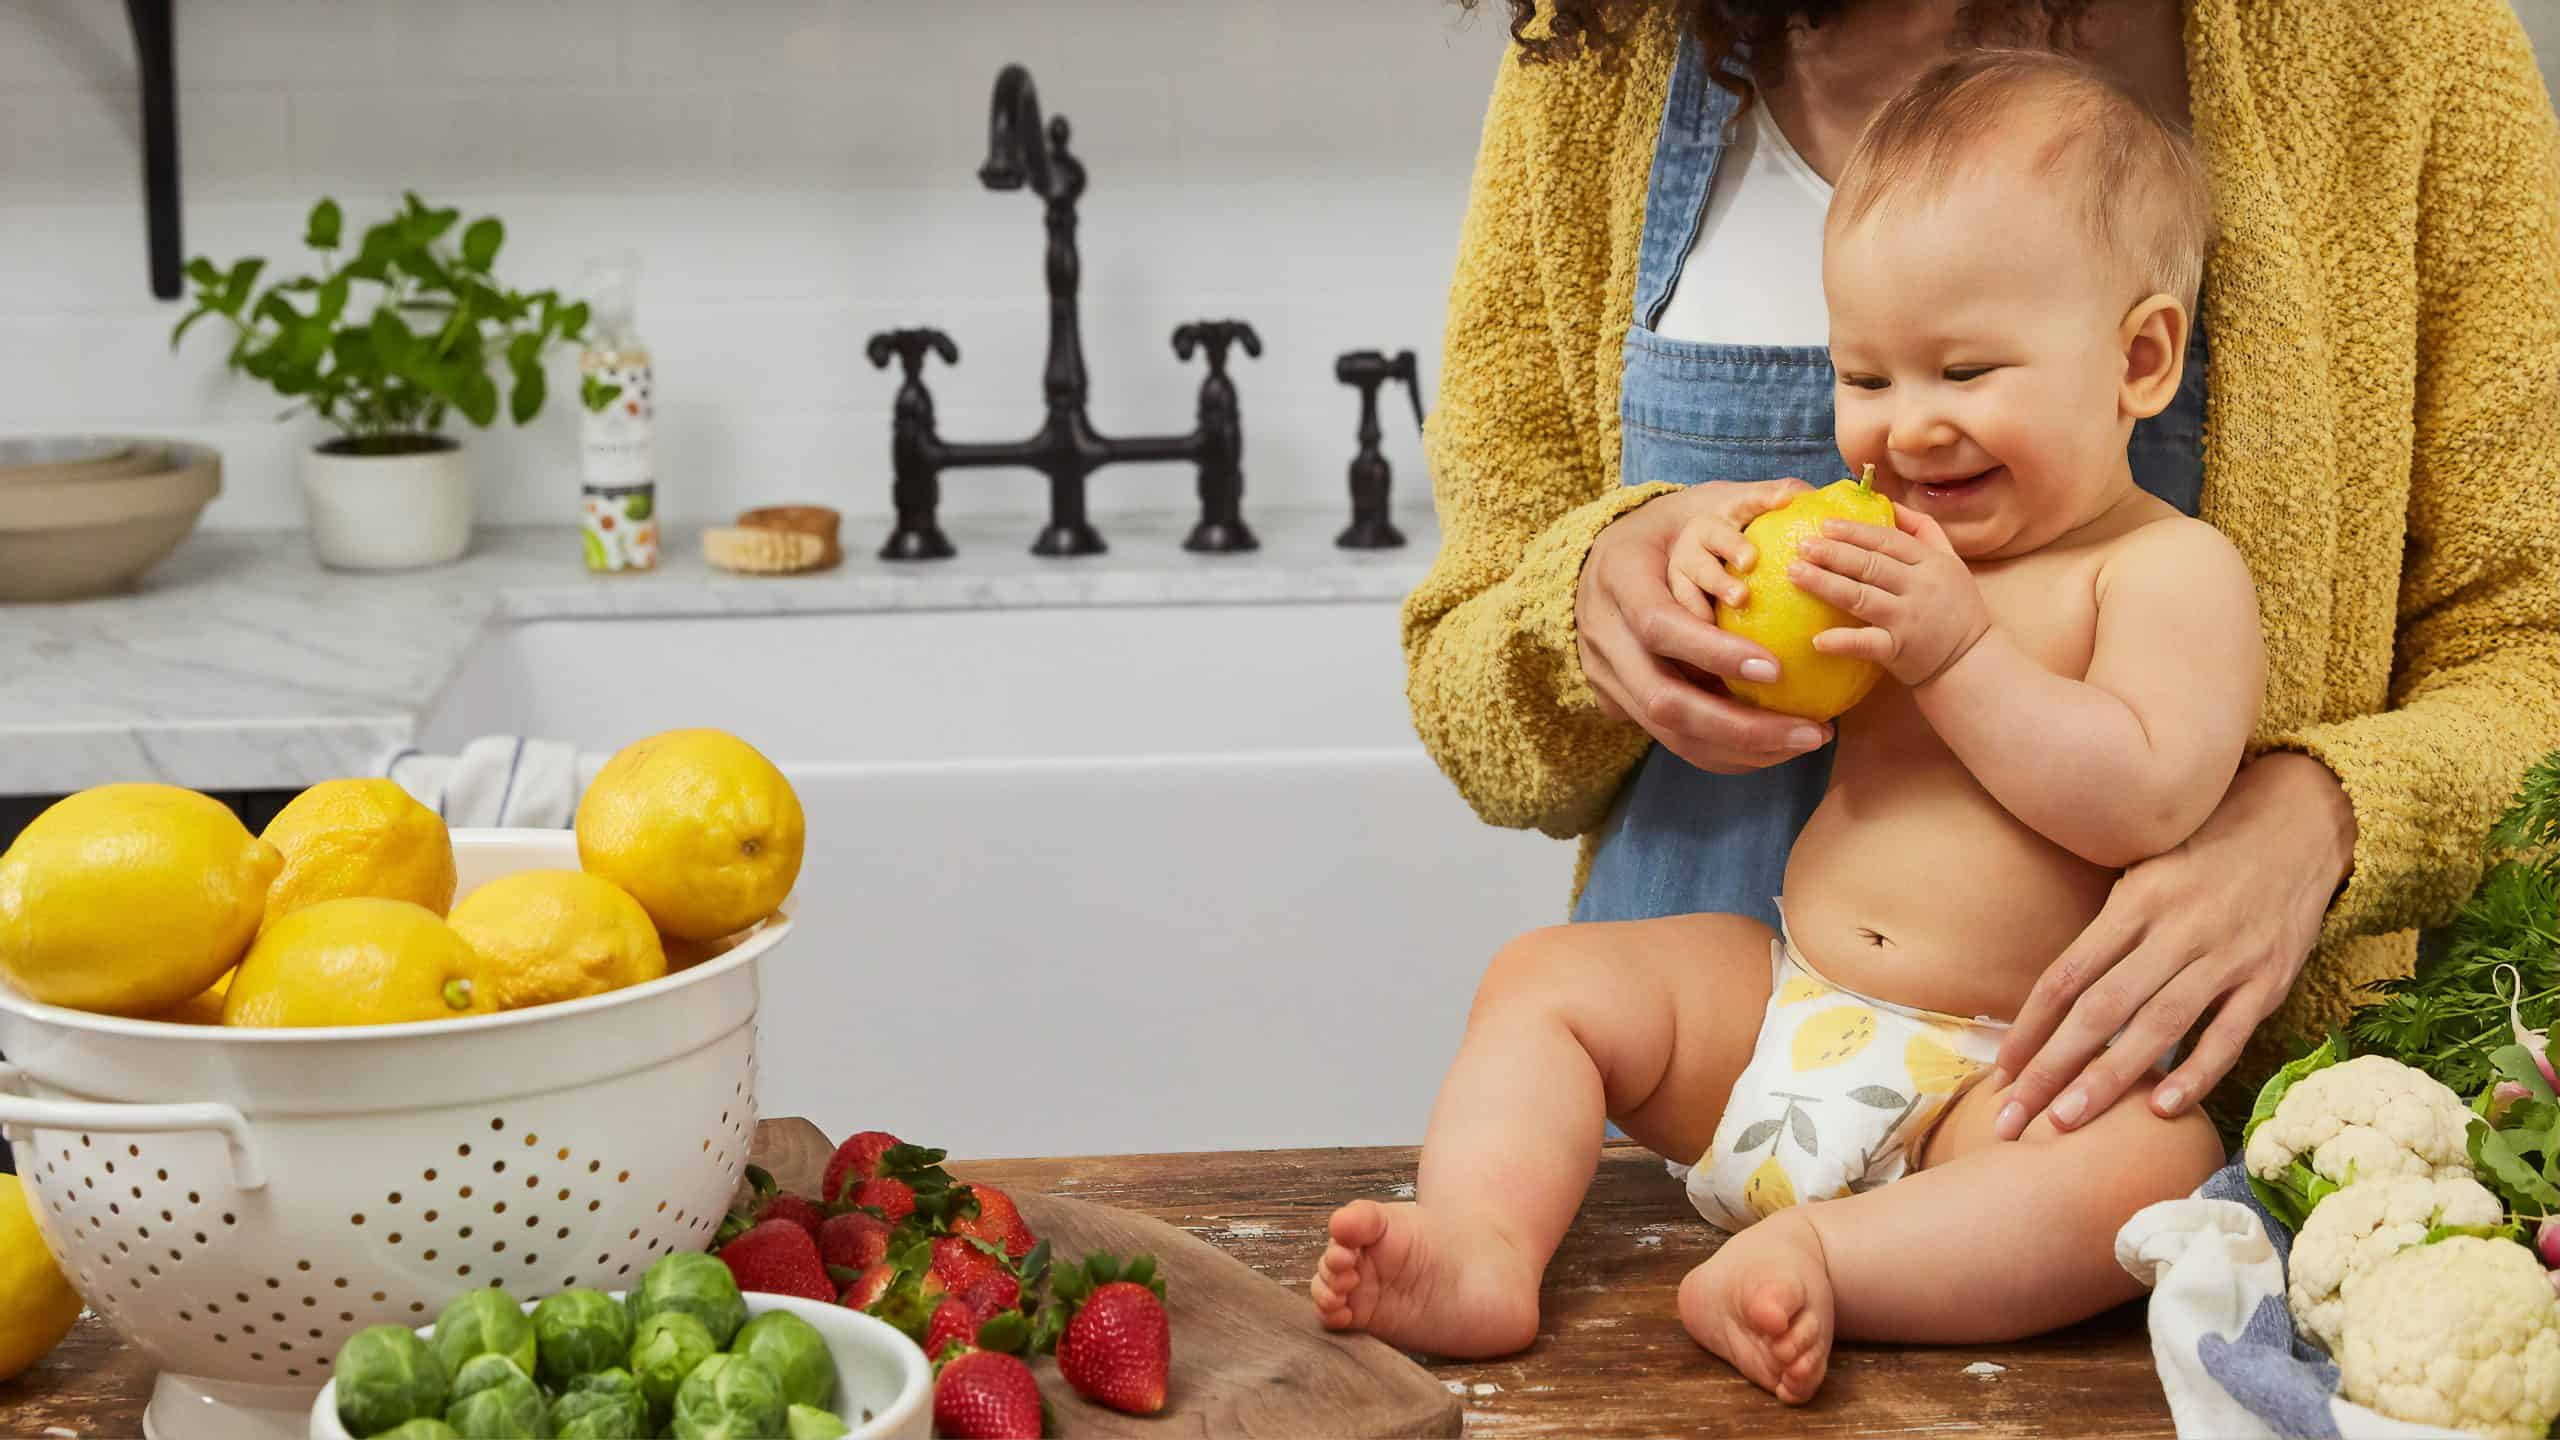 After Starting Solids: What to Expect